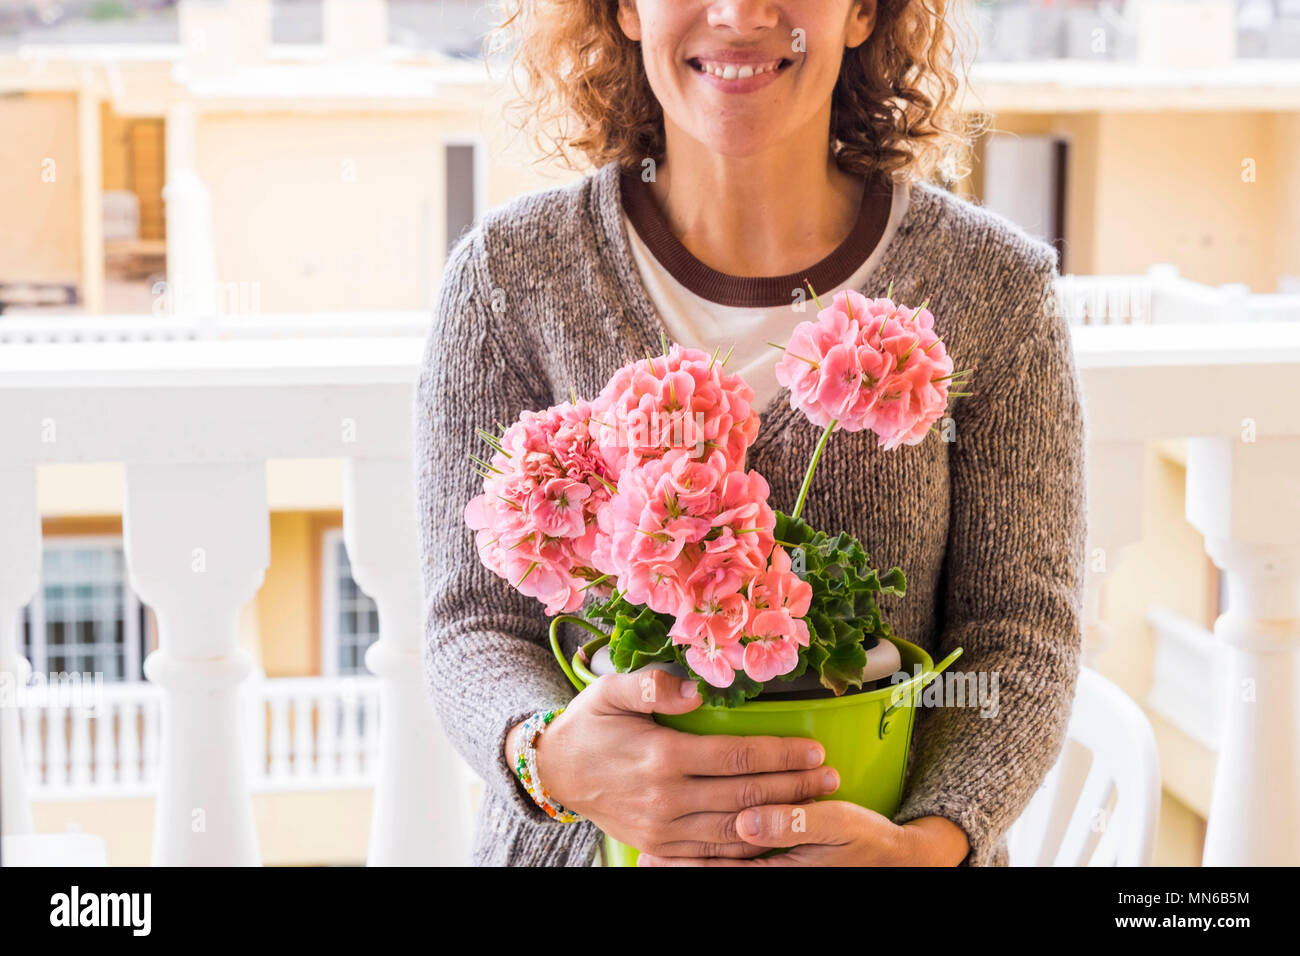 beautiful middle age caucasian woman smile and protect her flowers having care of them with an hug. outdoor terrace at home scene with colors of sprin Stock Photo